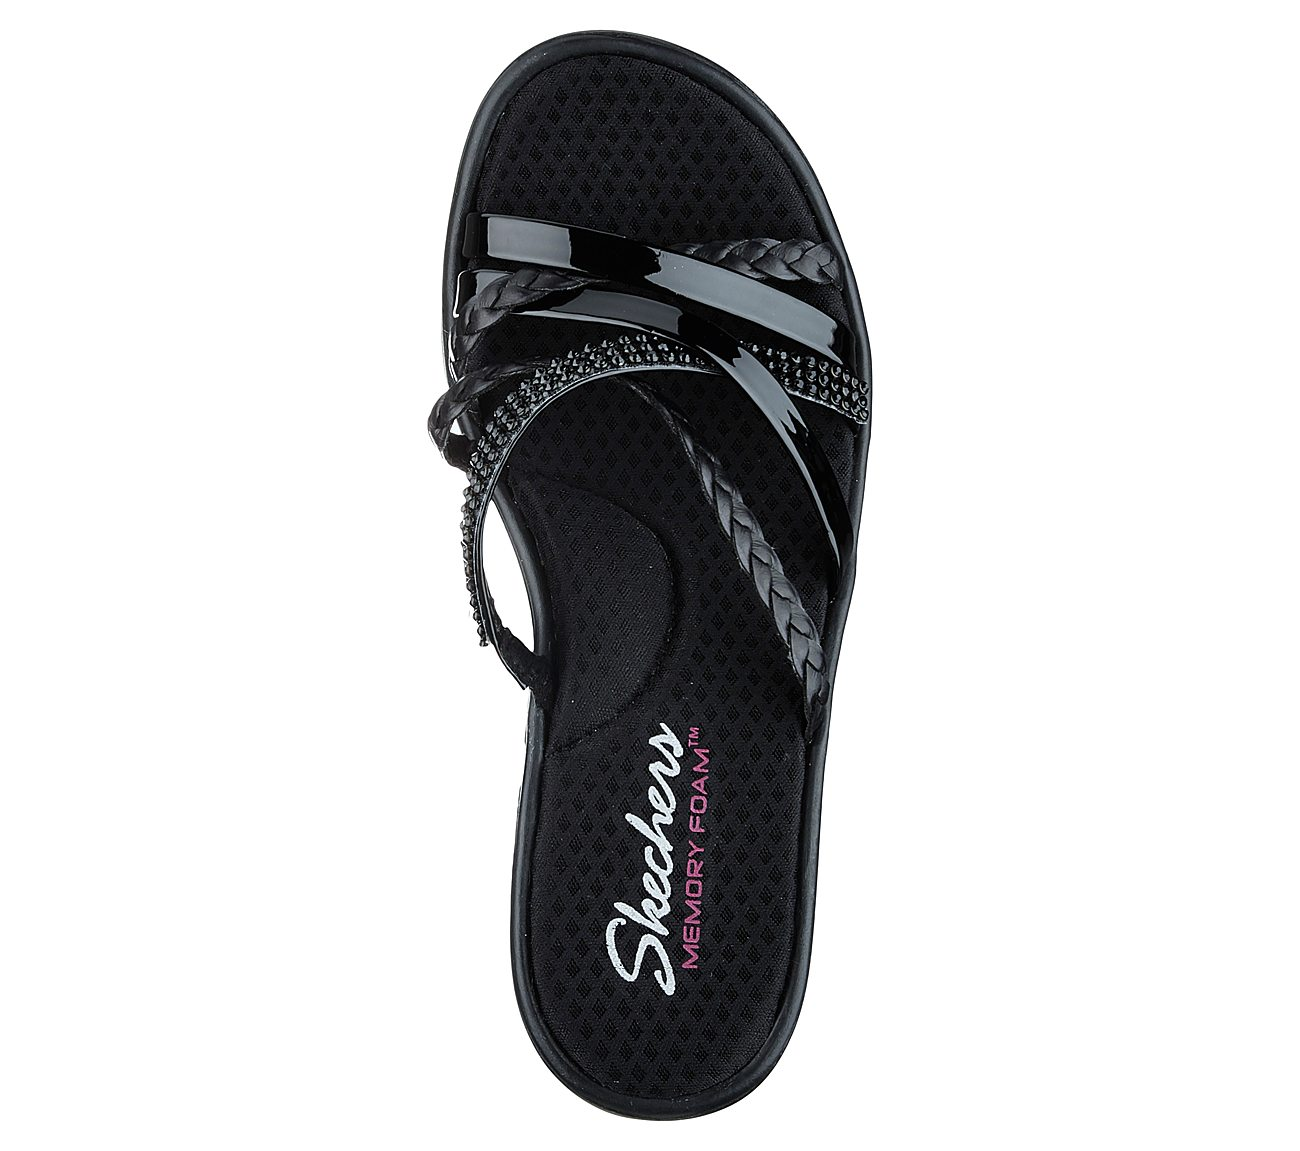 6c988e3aeaf6 Buy SKECHERS Rumblers - Wild Child Cali Shoes only  32.90